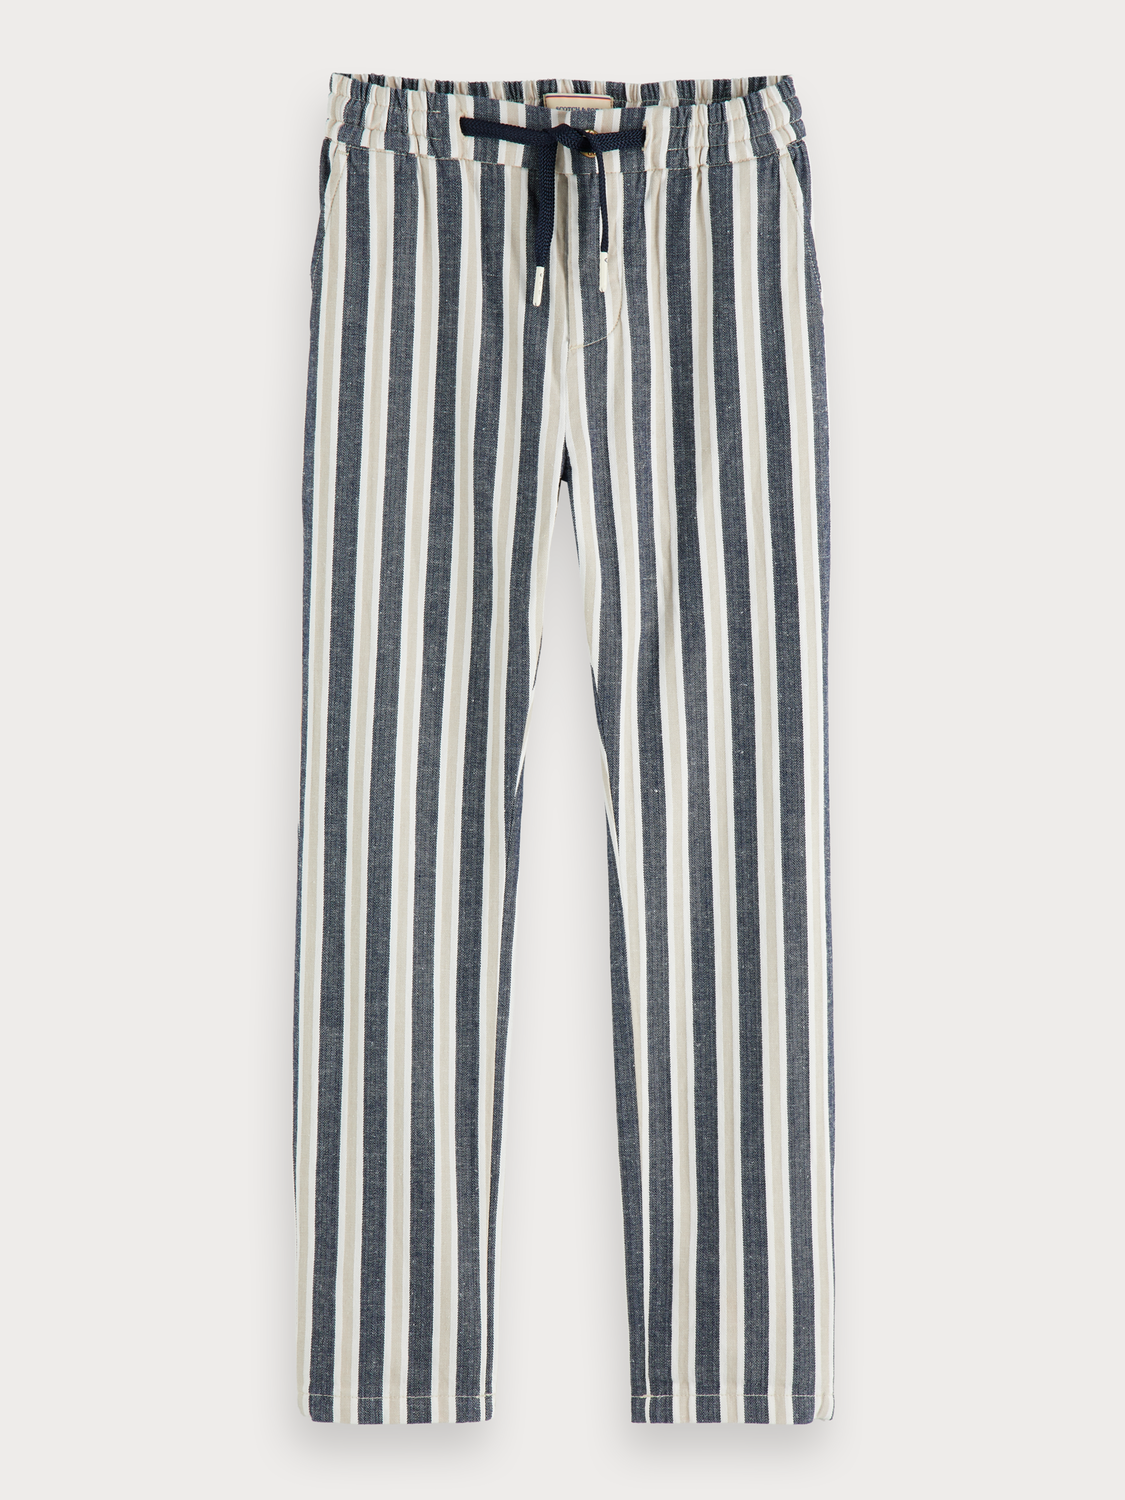 Boys Cotton-linen trousers | Loose tapered fit